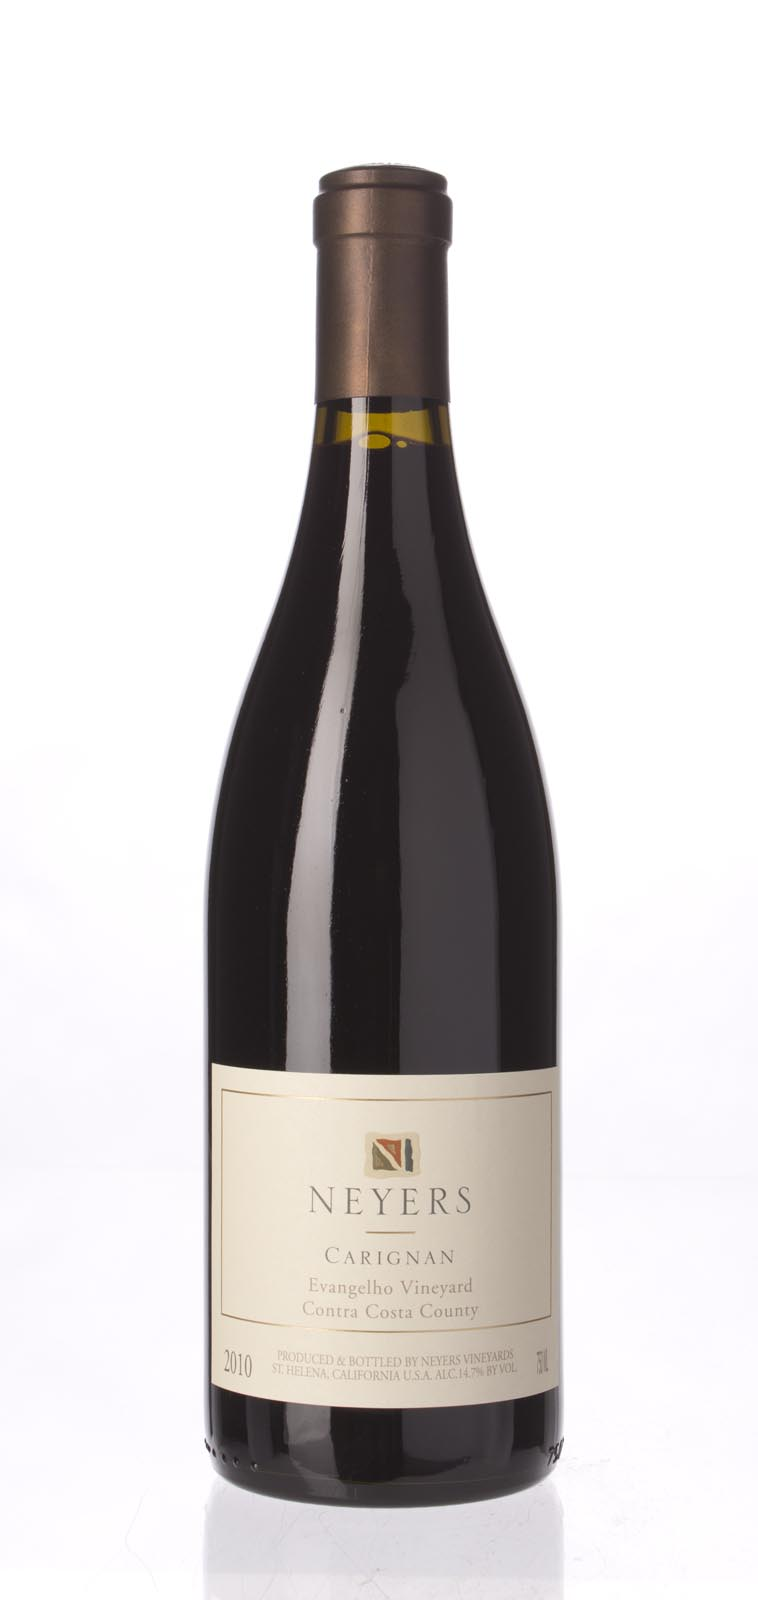 Neyers Carignan Evangelho Vineyard 2010,  (WS93) from The BPW - Merchants of rare and fine wines.